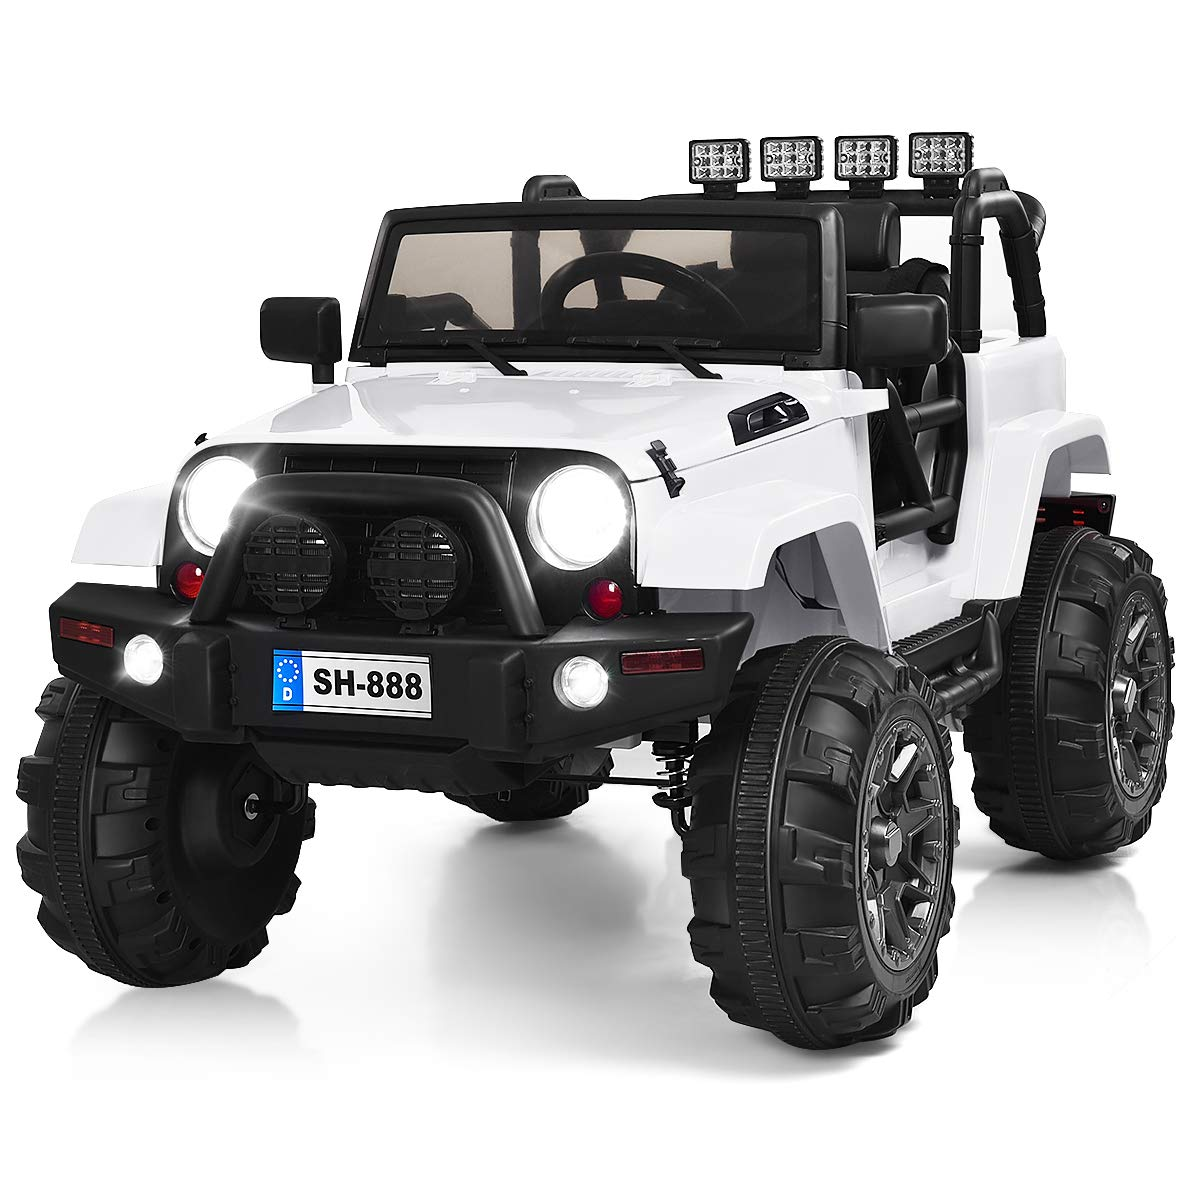 Costzon Ride On Truck, 12V Battery Powered Electric Ride On Car w/ 2.4 GHZ Bluetooth Parental Remote Control, LED Lights, Double Doors, Safety Belt, Music, MP3 Player, Spring Suspension (White)